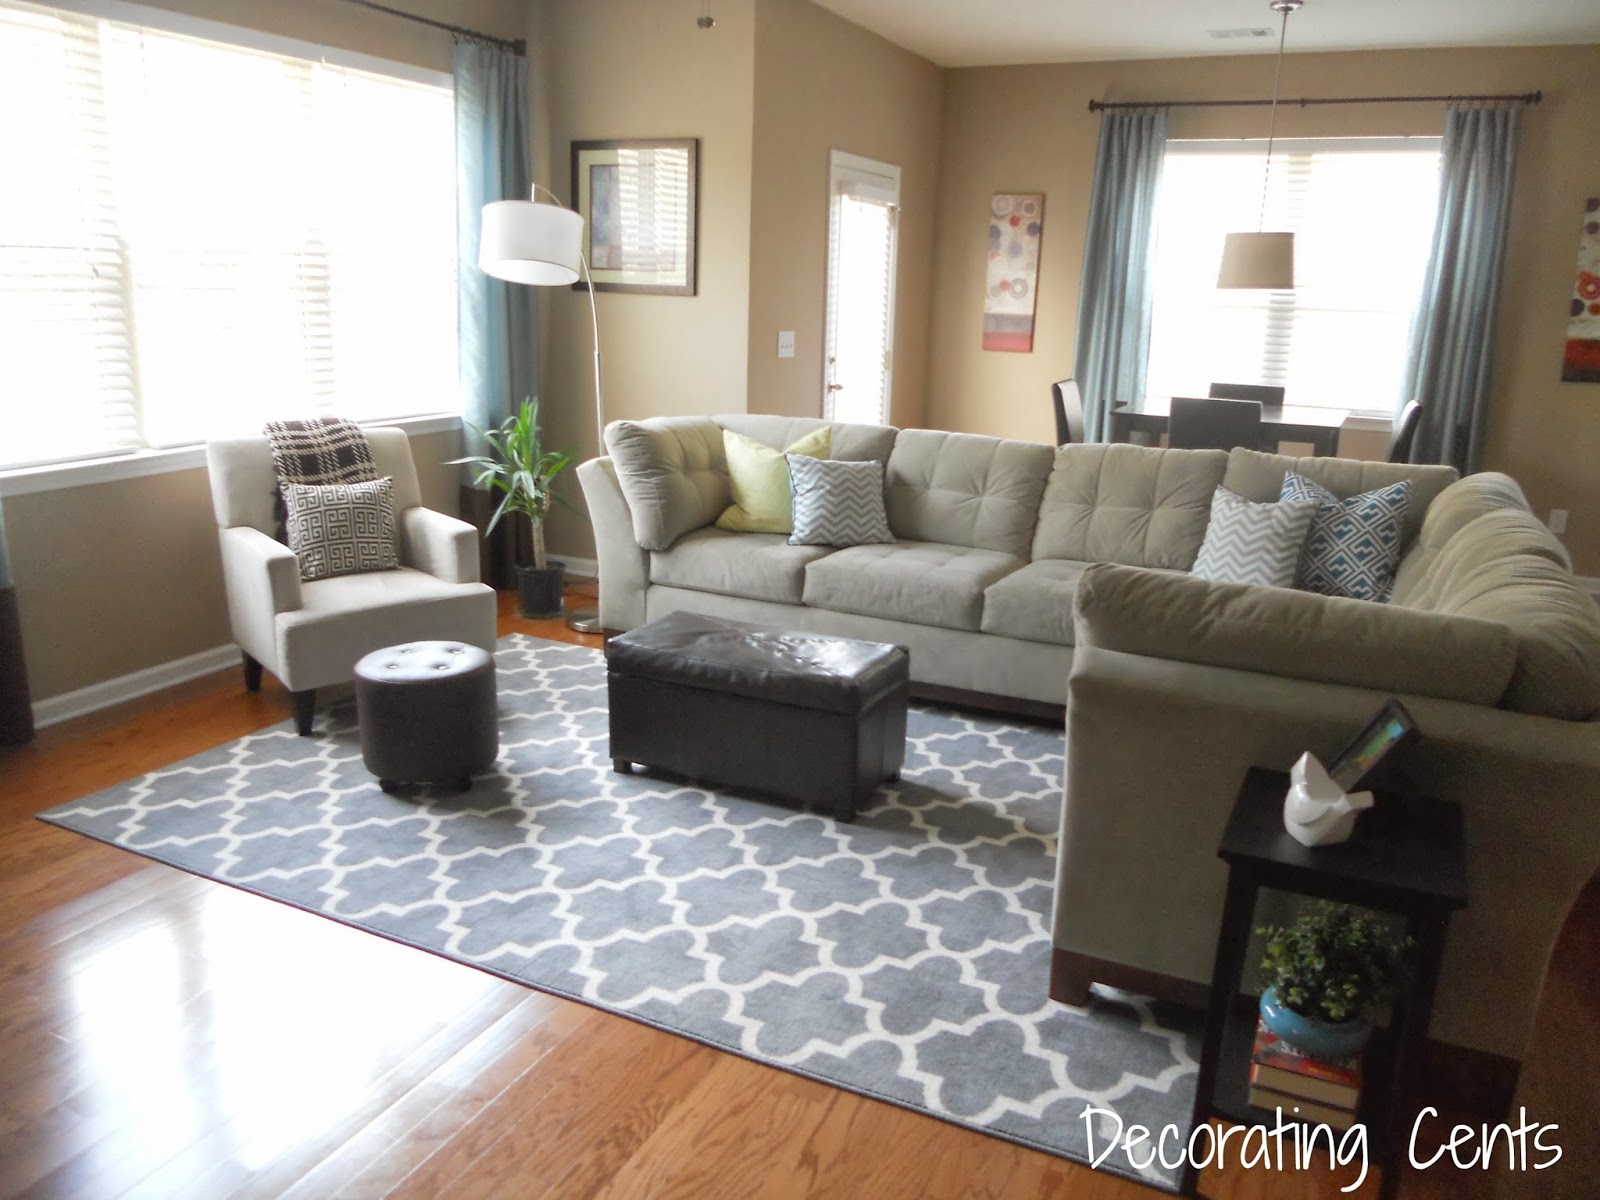 Decorating Cents: New Family Room Rug